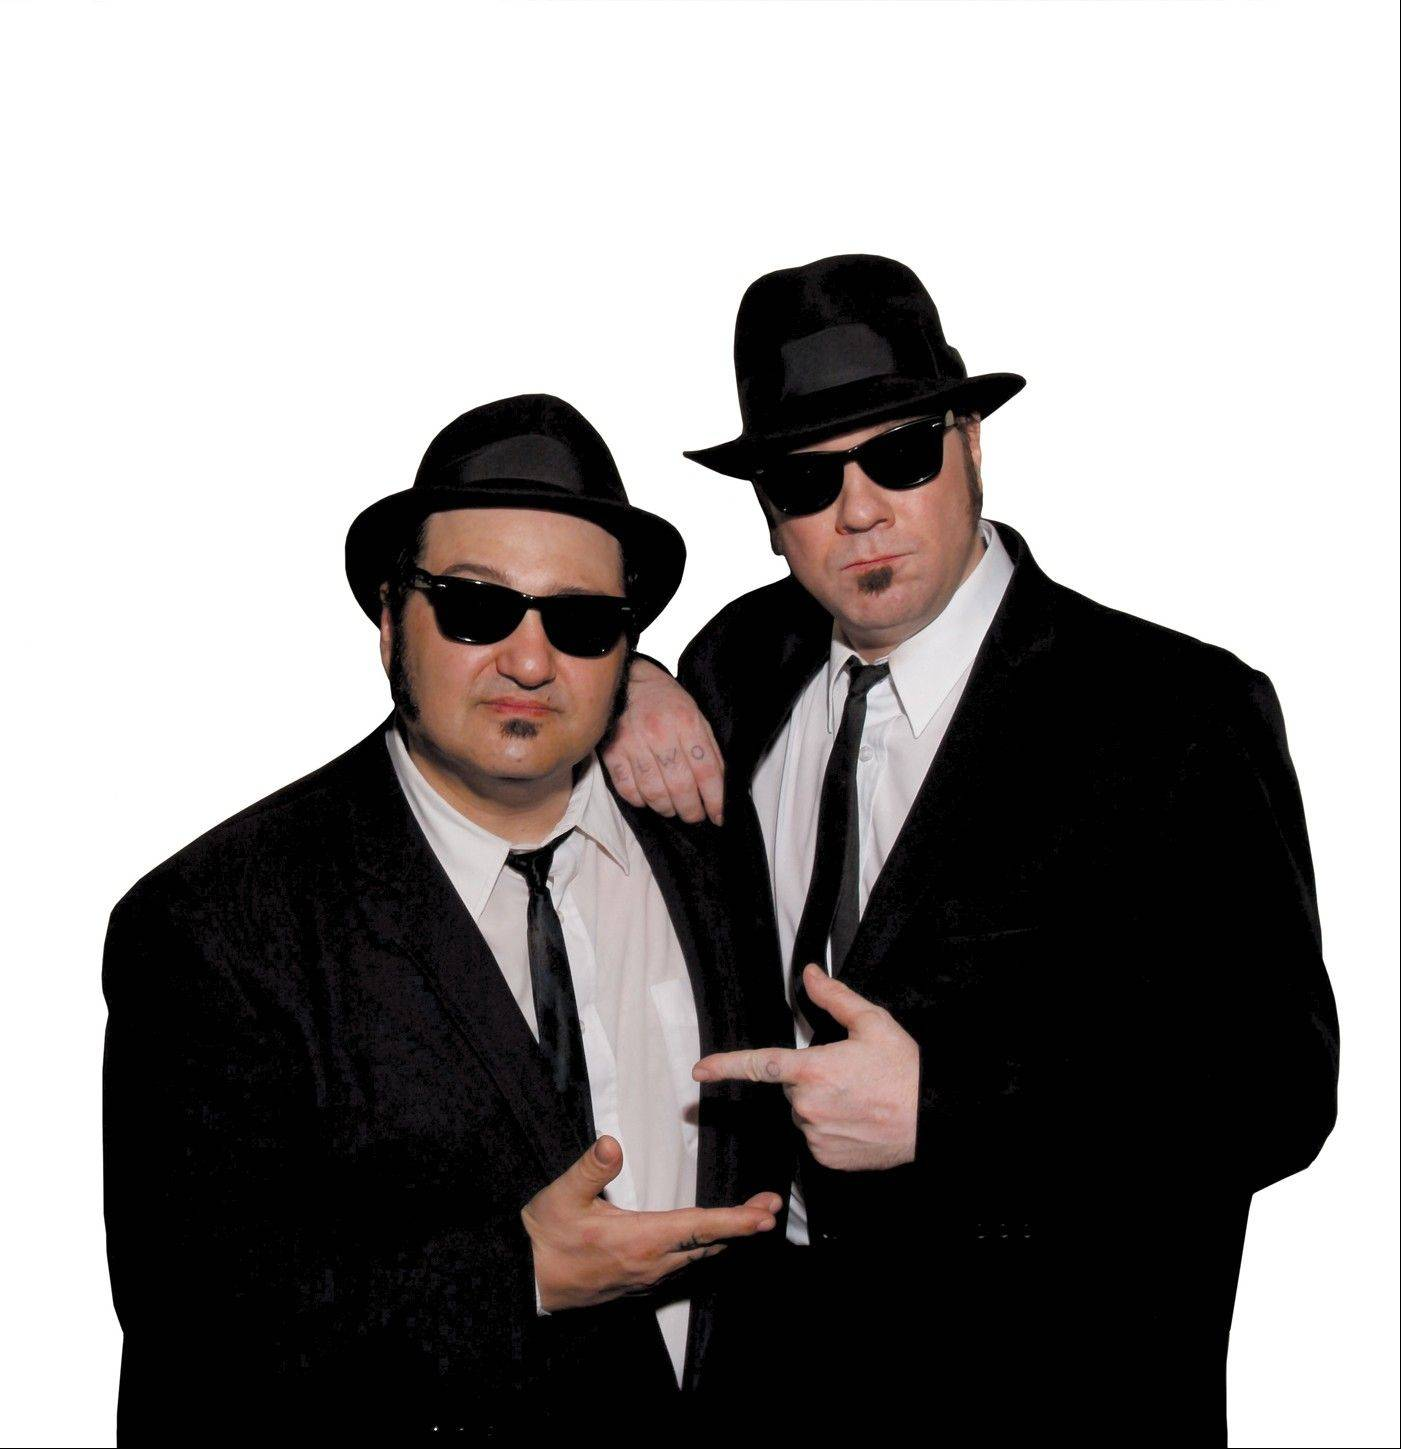 """The Official Blues Brothers� Revue"" plays at 8 p.m. Saturday, Oct. 5, at North Central College's Pfeiffer Hall in Naperville and at College of Lake County's Lumber Center for the Performing Arts in Grayslake on April 2, 2014."